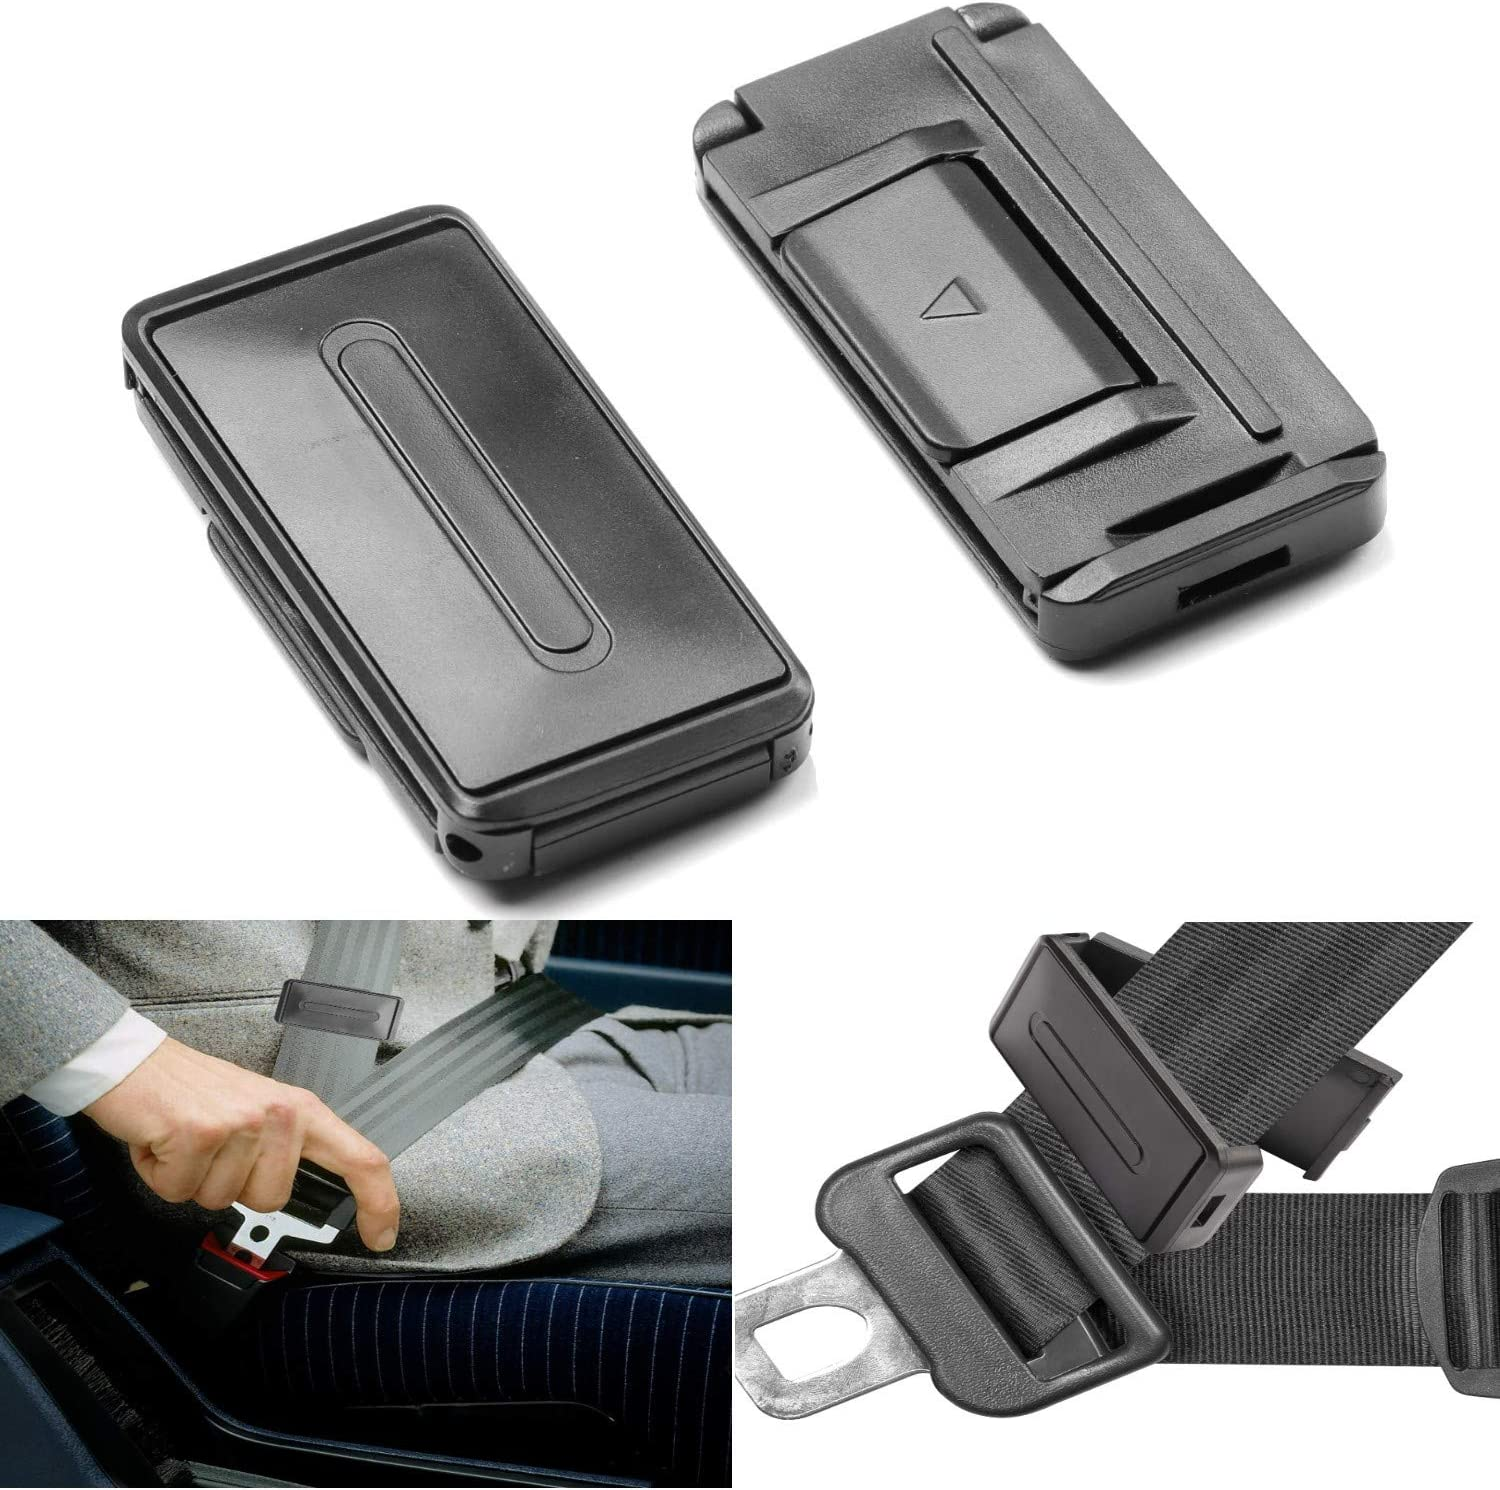 smart adjust seat belt clip improves comfort for relaxing shoulder neck give you a comfortable. Pack of 4 seat belt clips car belt positioner car seat belt clip safety belt